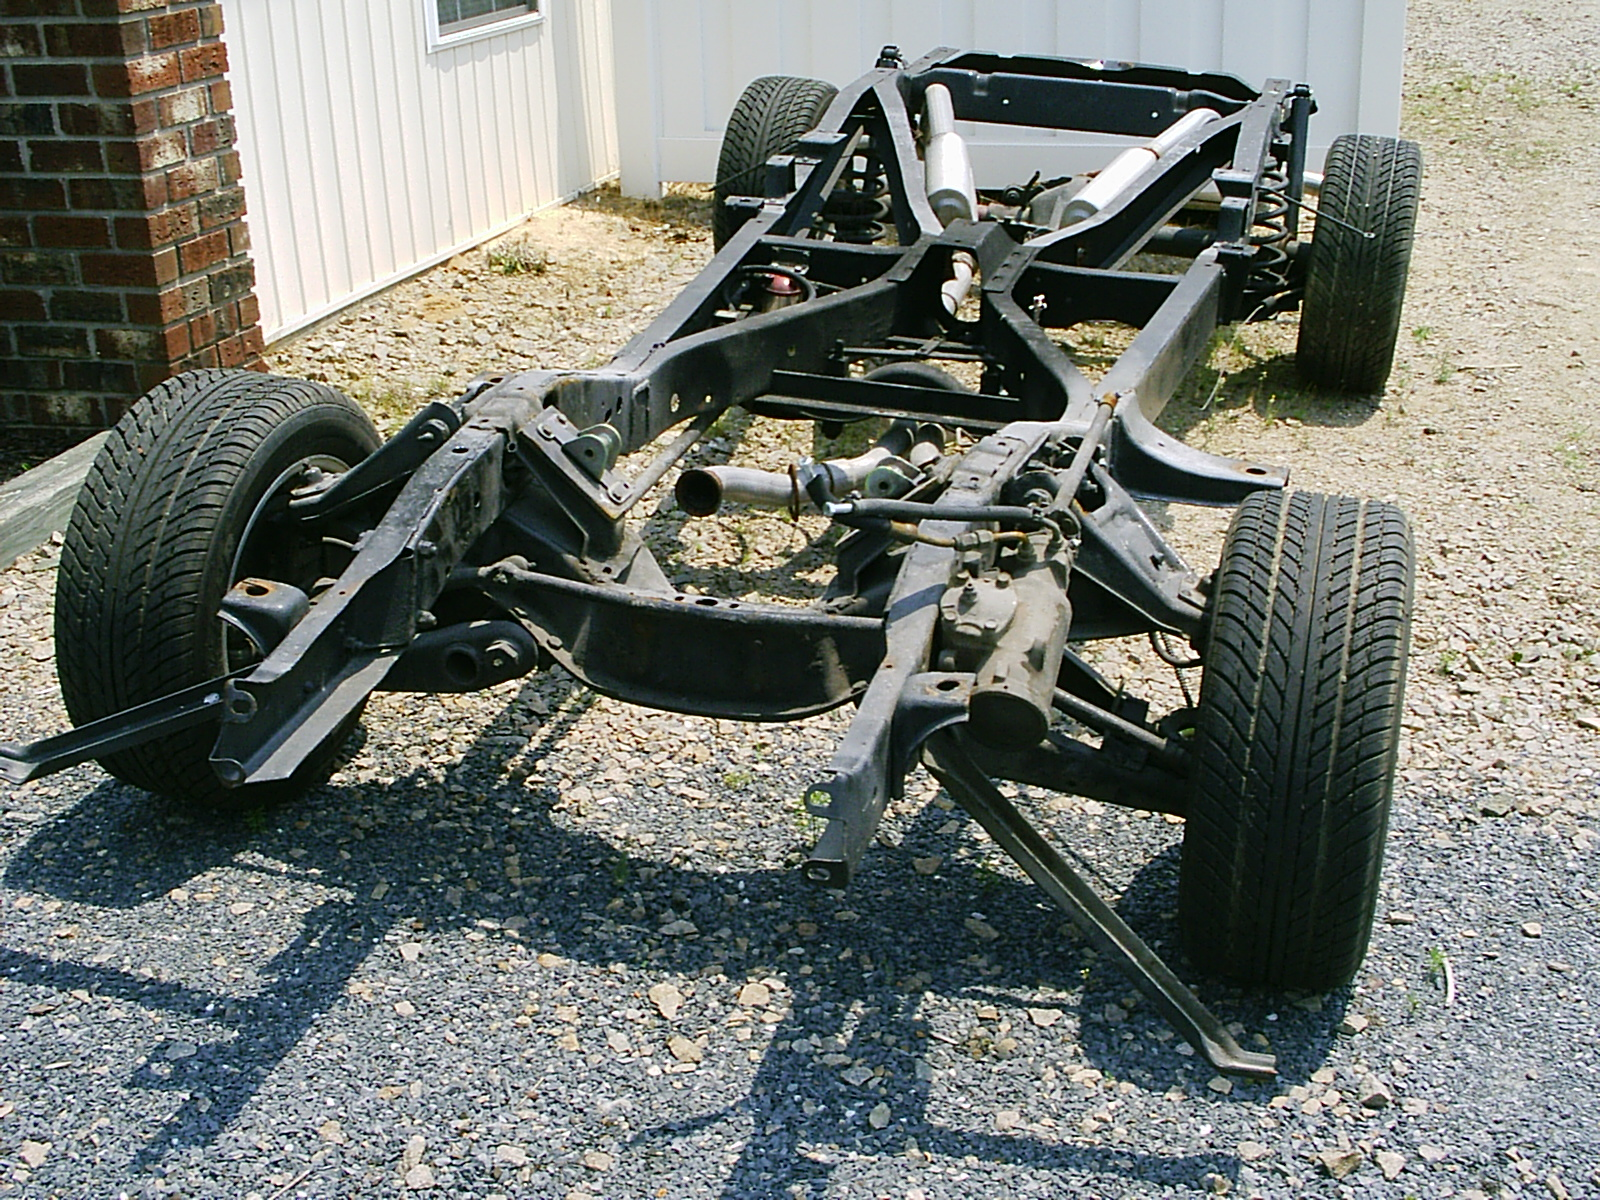 http://fr.academic.ru/pictures/frwiki/67/Chassis_with_suspension_and_exhaust_system.jpg